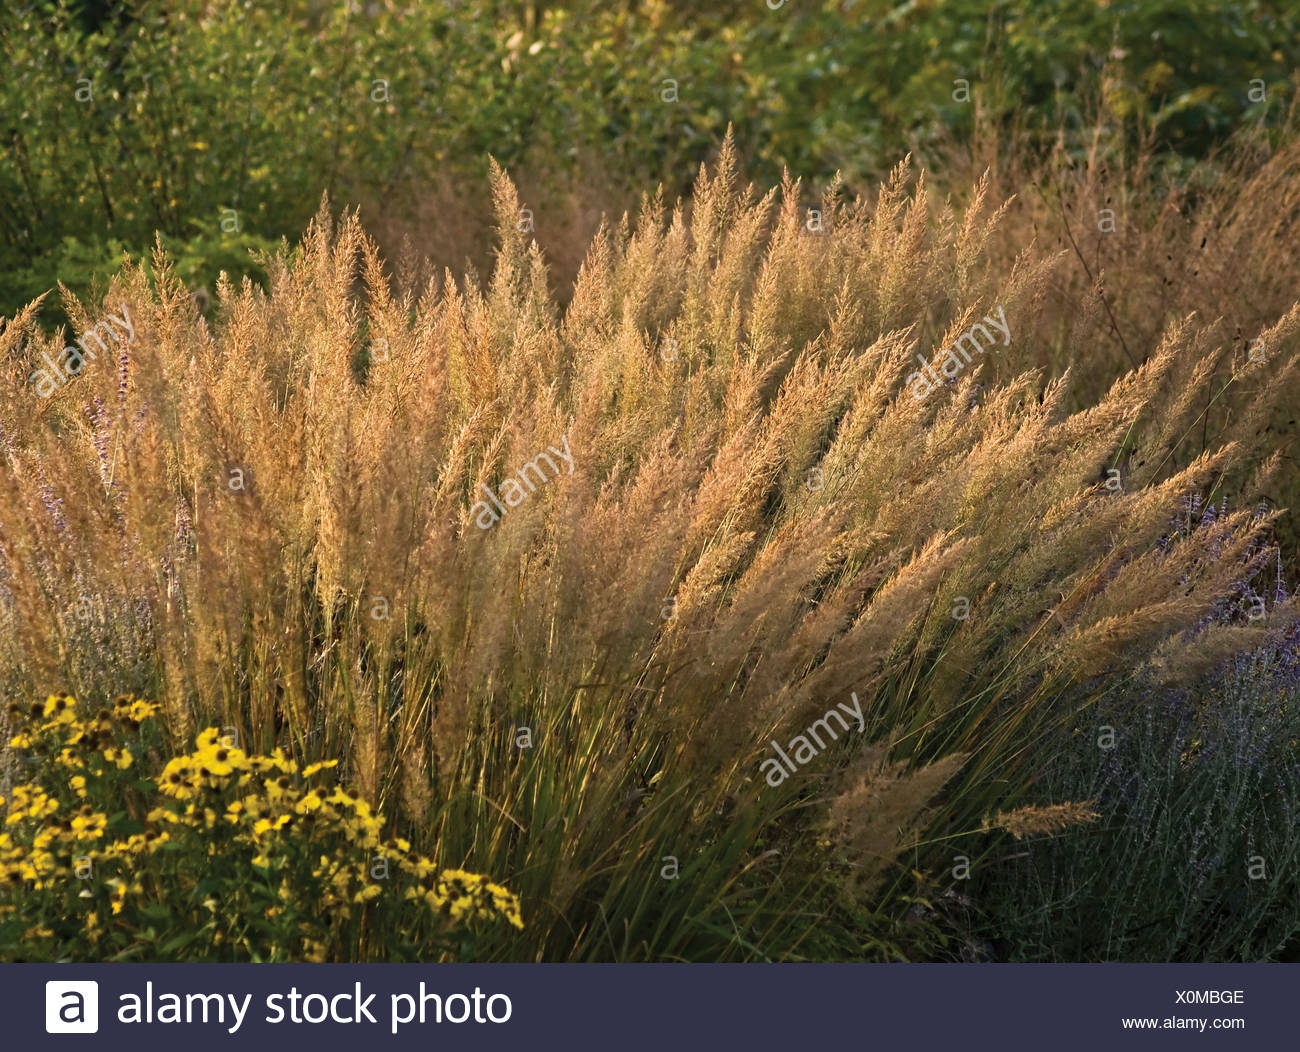 Calamagrostis brachytricha, Korean feather reed grass with flowering panicles on long stems. - Stock Image